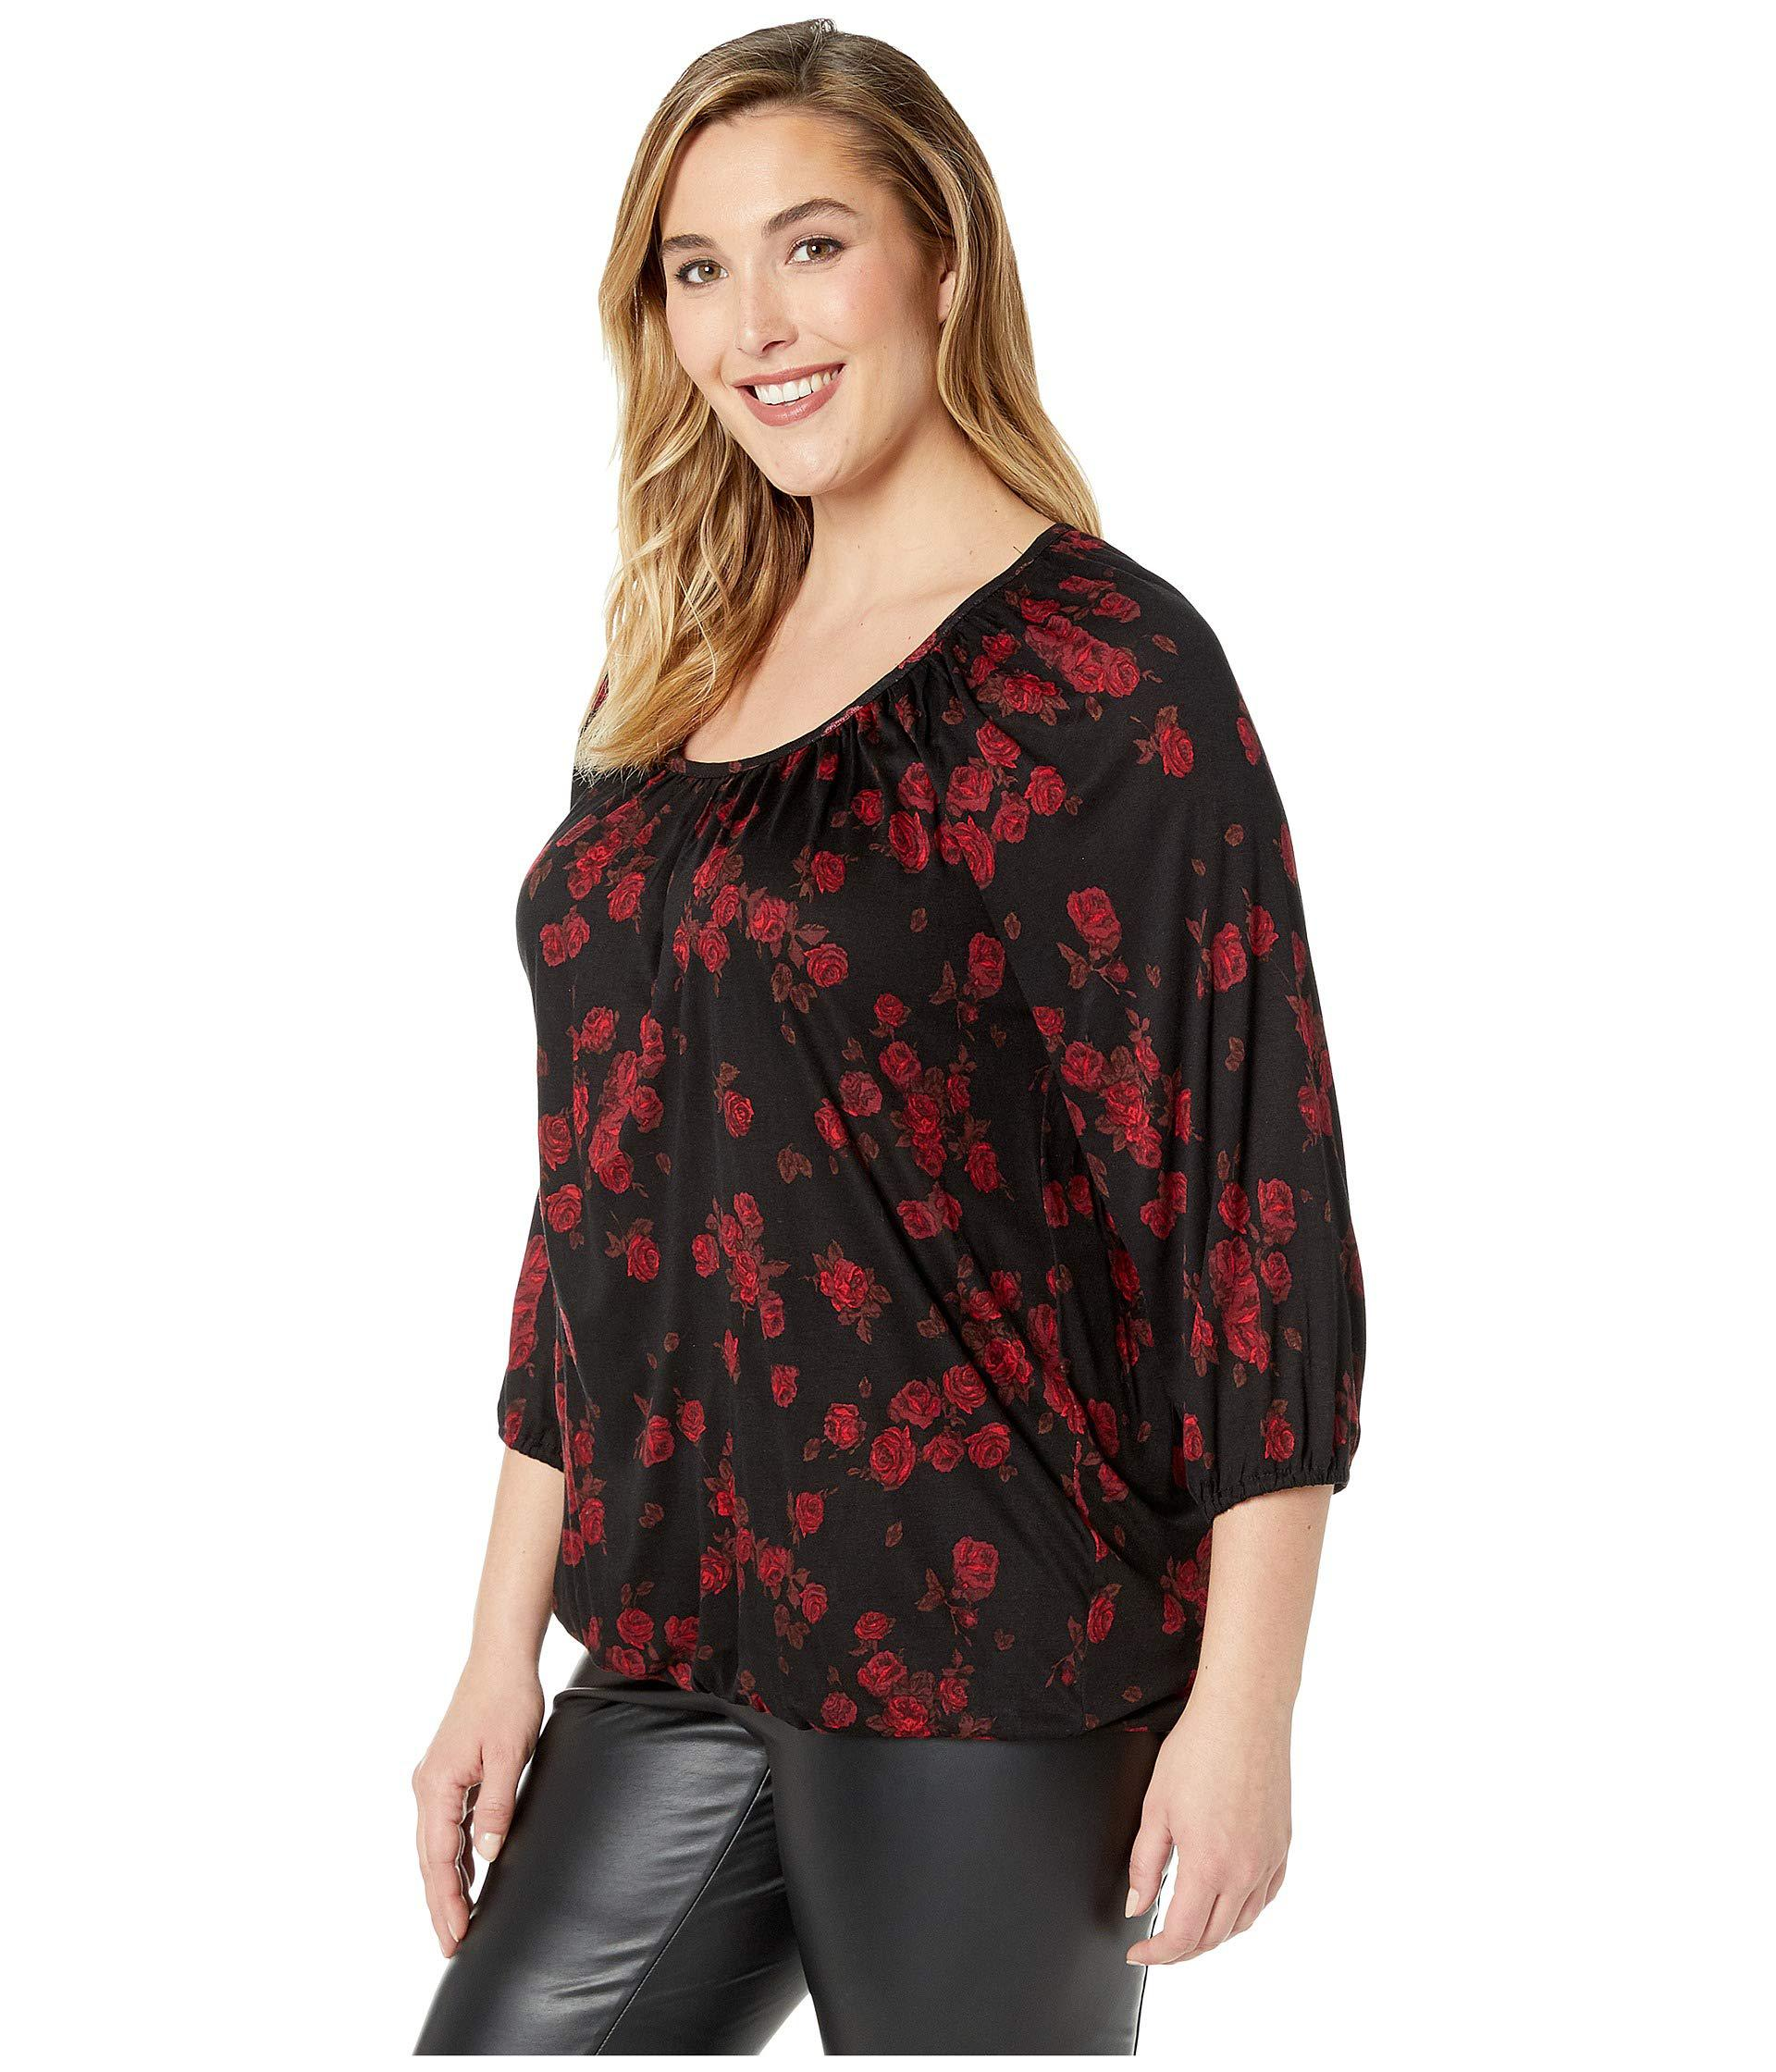 950de6eefc2 Lyst - MICHAEL Michael Kors Plus Size Eden Rose Peasant Top (black red  Currant) Women s Clothing in Red